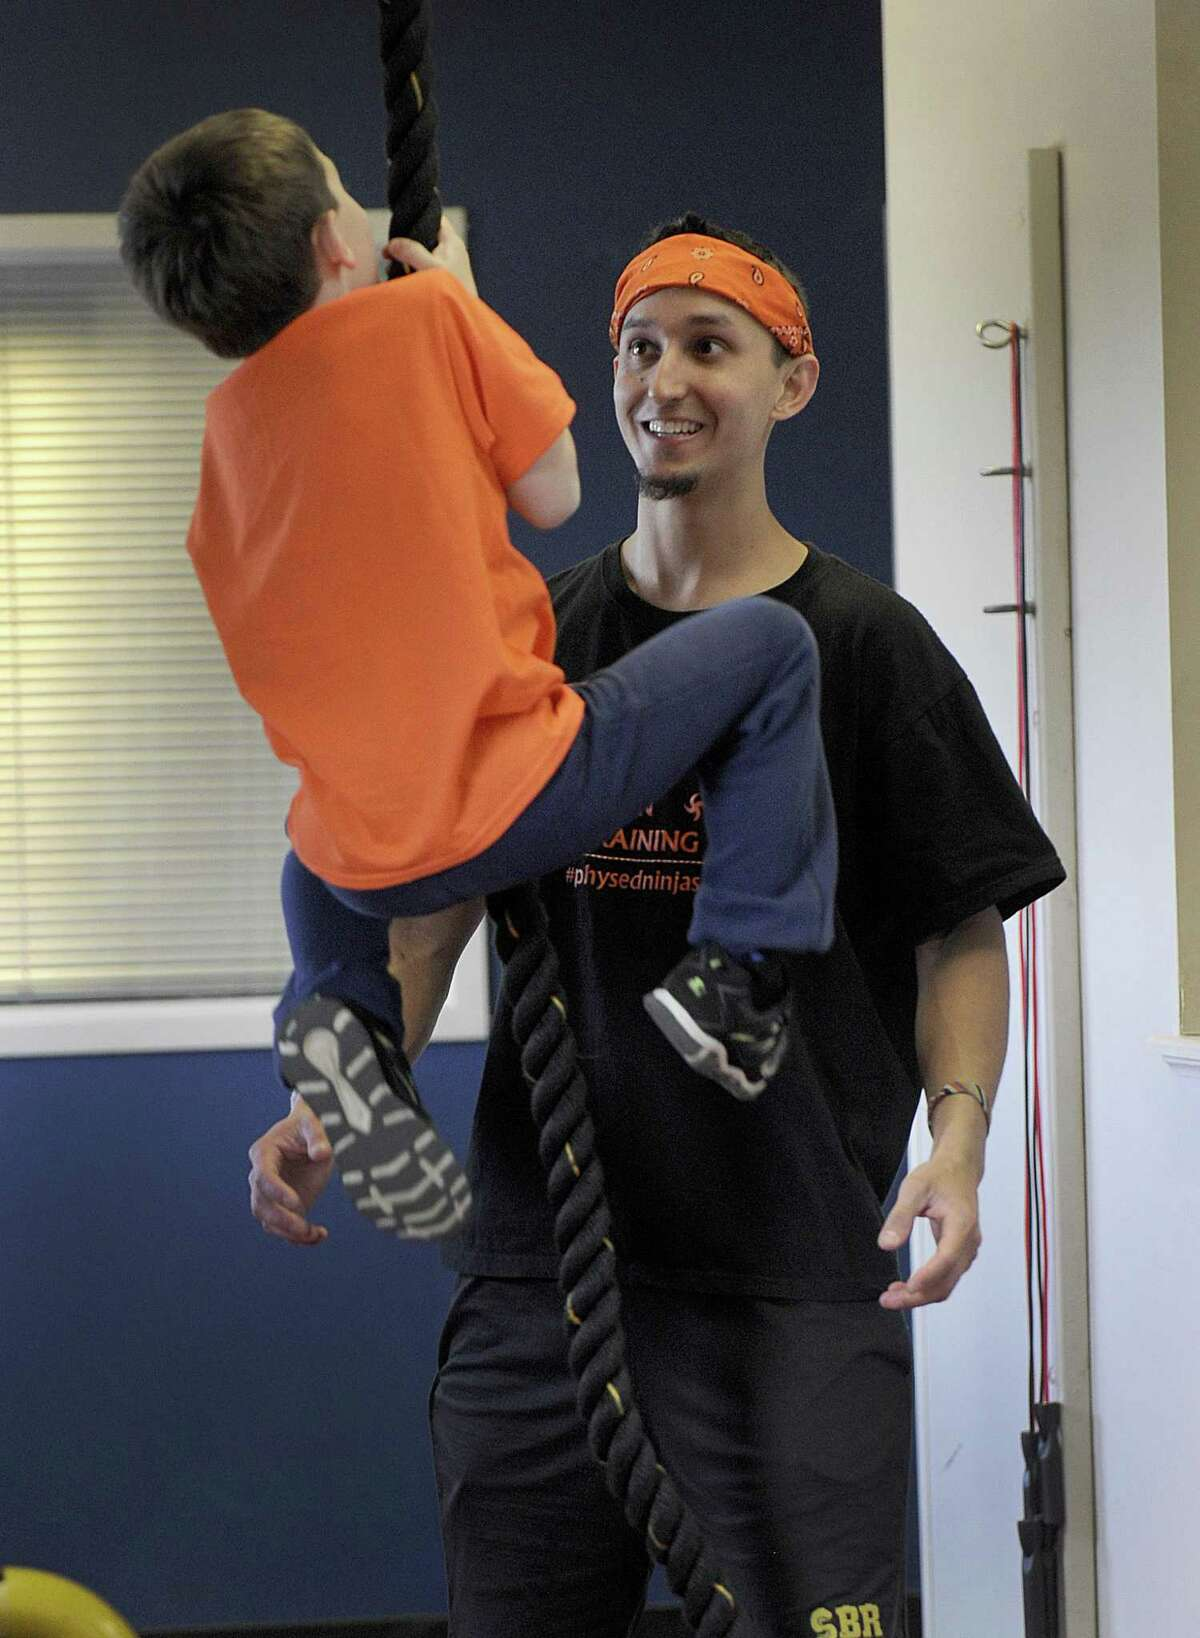 Jean Claude Chacon-Saucy guides Charlie Fergason, 6, of New Milford, through a Ninja-Warrior inspired set of challenges Monday, April 17, 2017. Chacon-Saucy will compete in the American Ninja Warrior TV show next month.